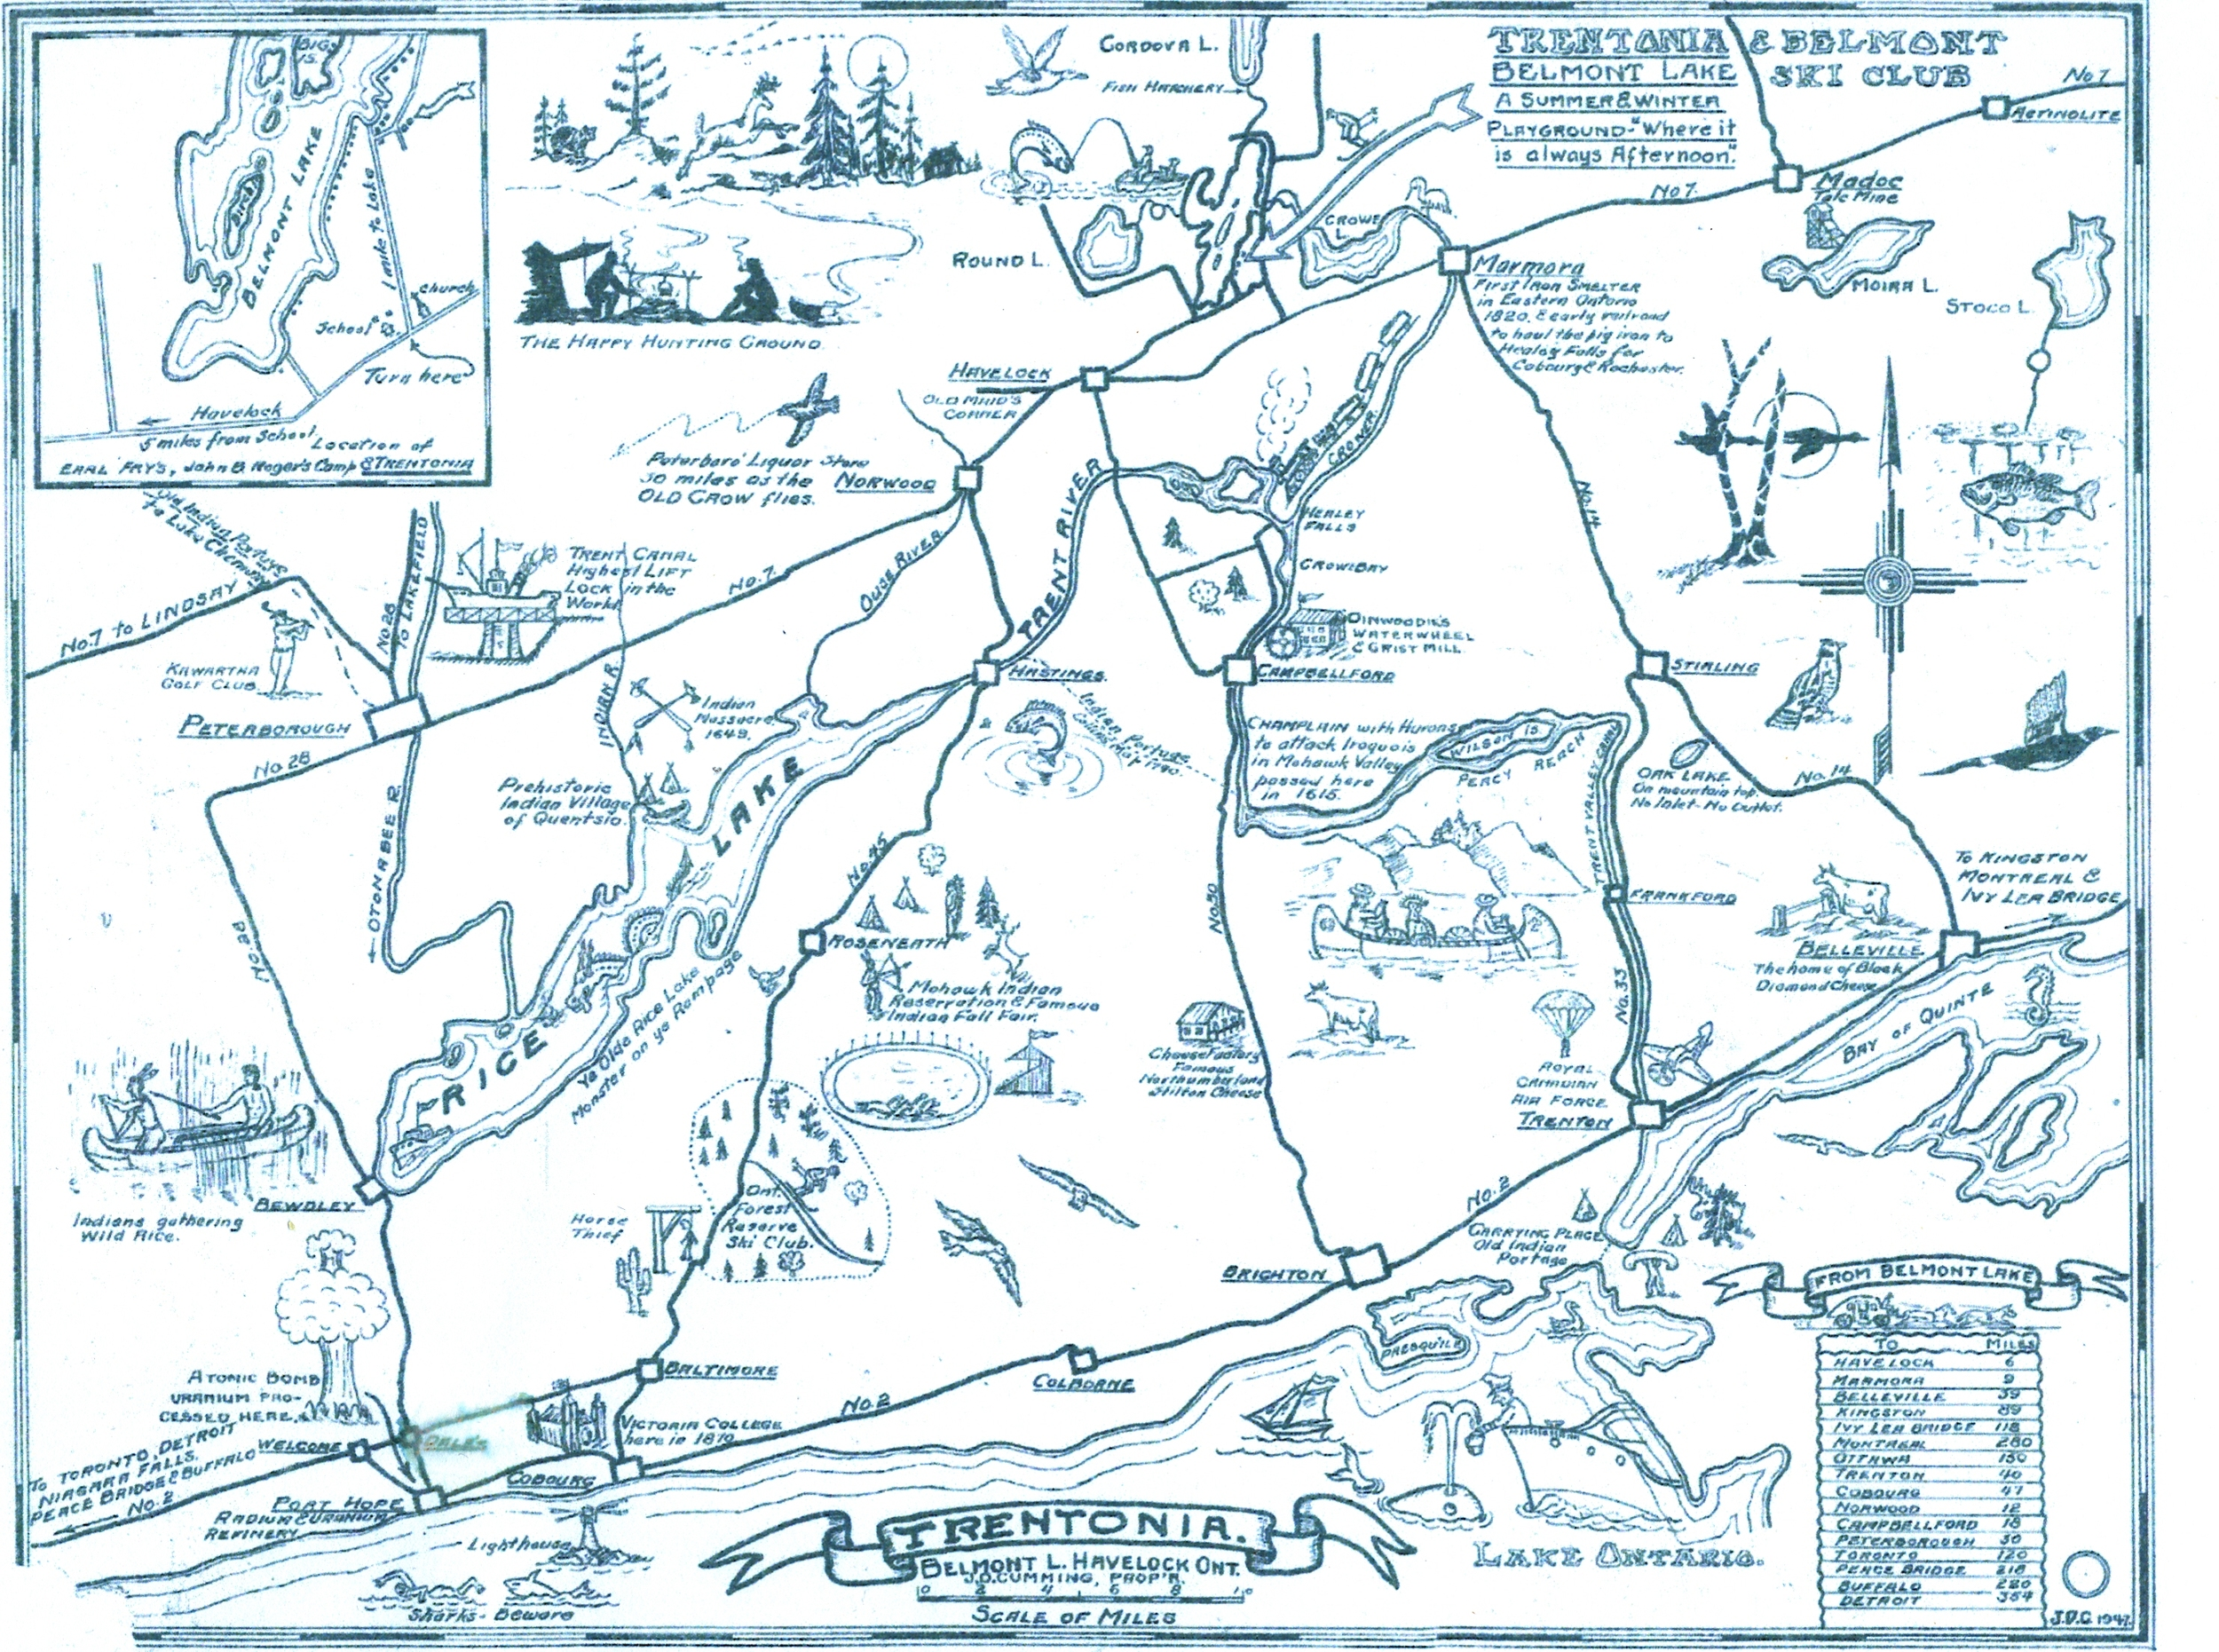 Tourist map designed by Mr. Cumming in 1947